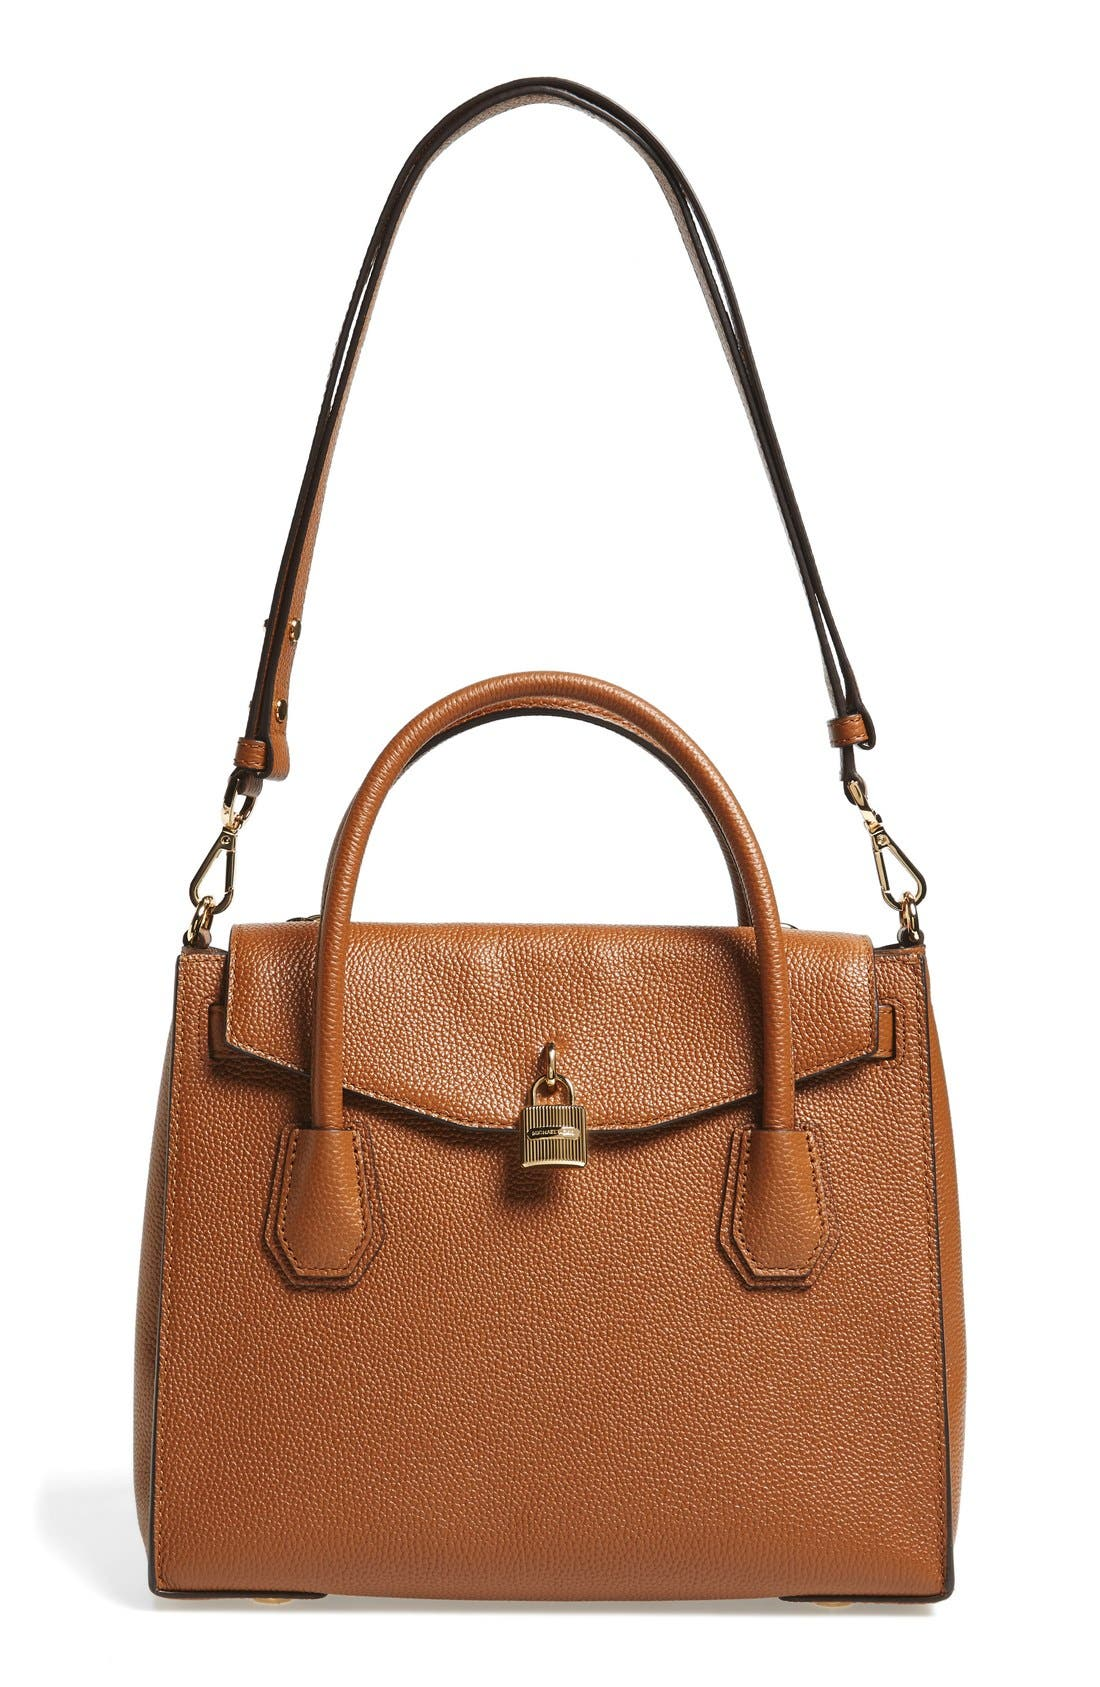 Alternate Image 1 Selected - MICHAEL Michael Kors Large Mercer All-in-One Leather Satchel